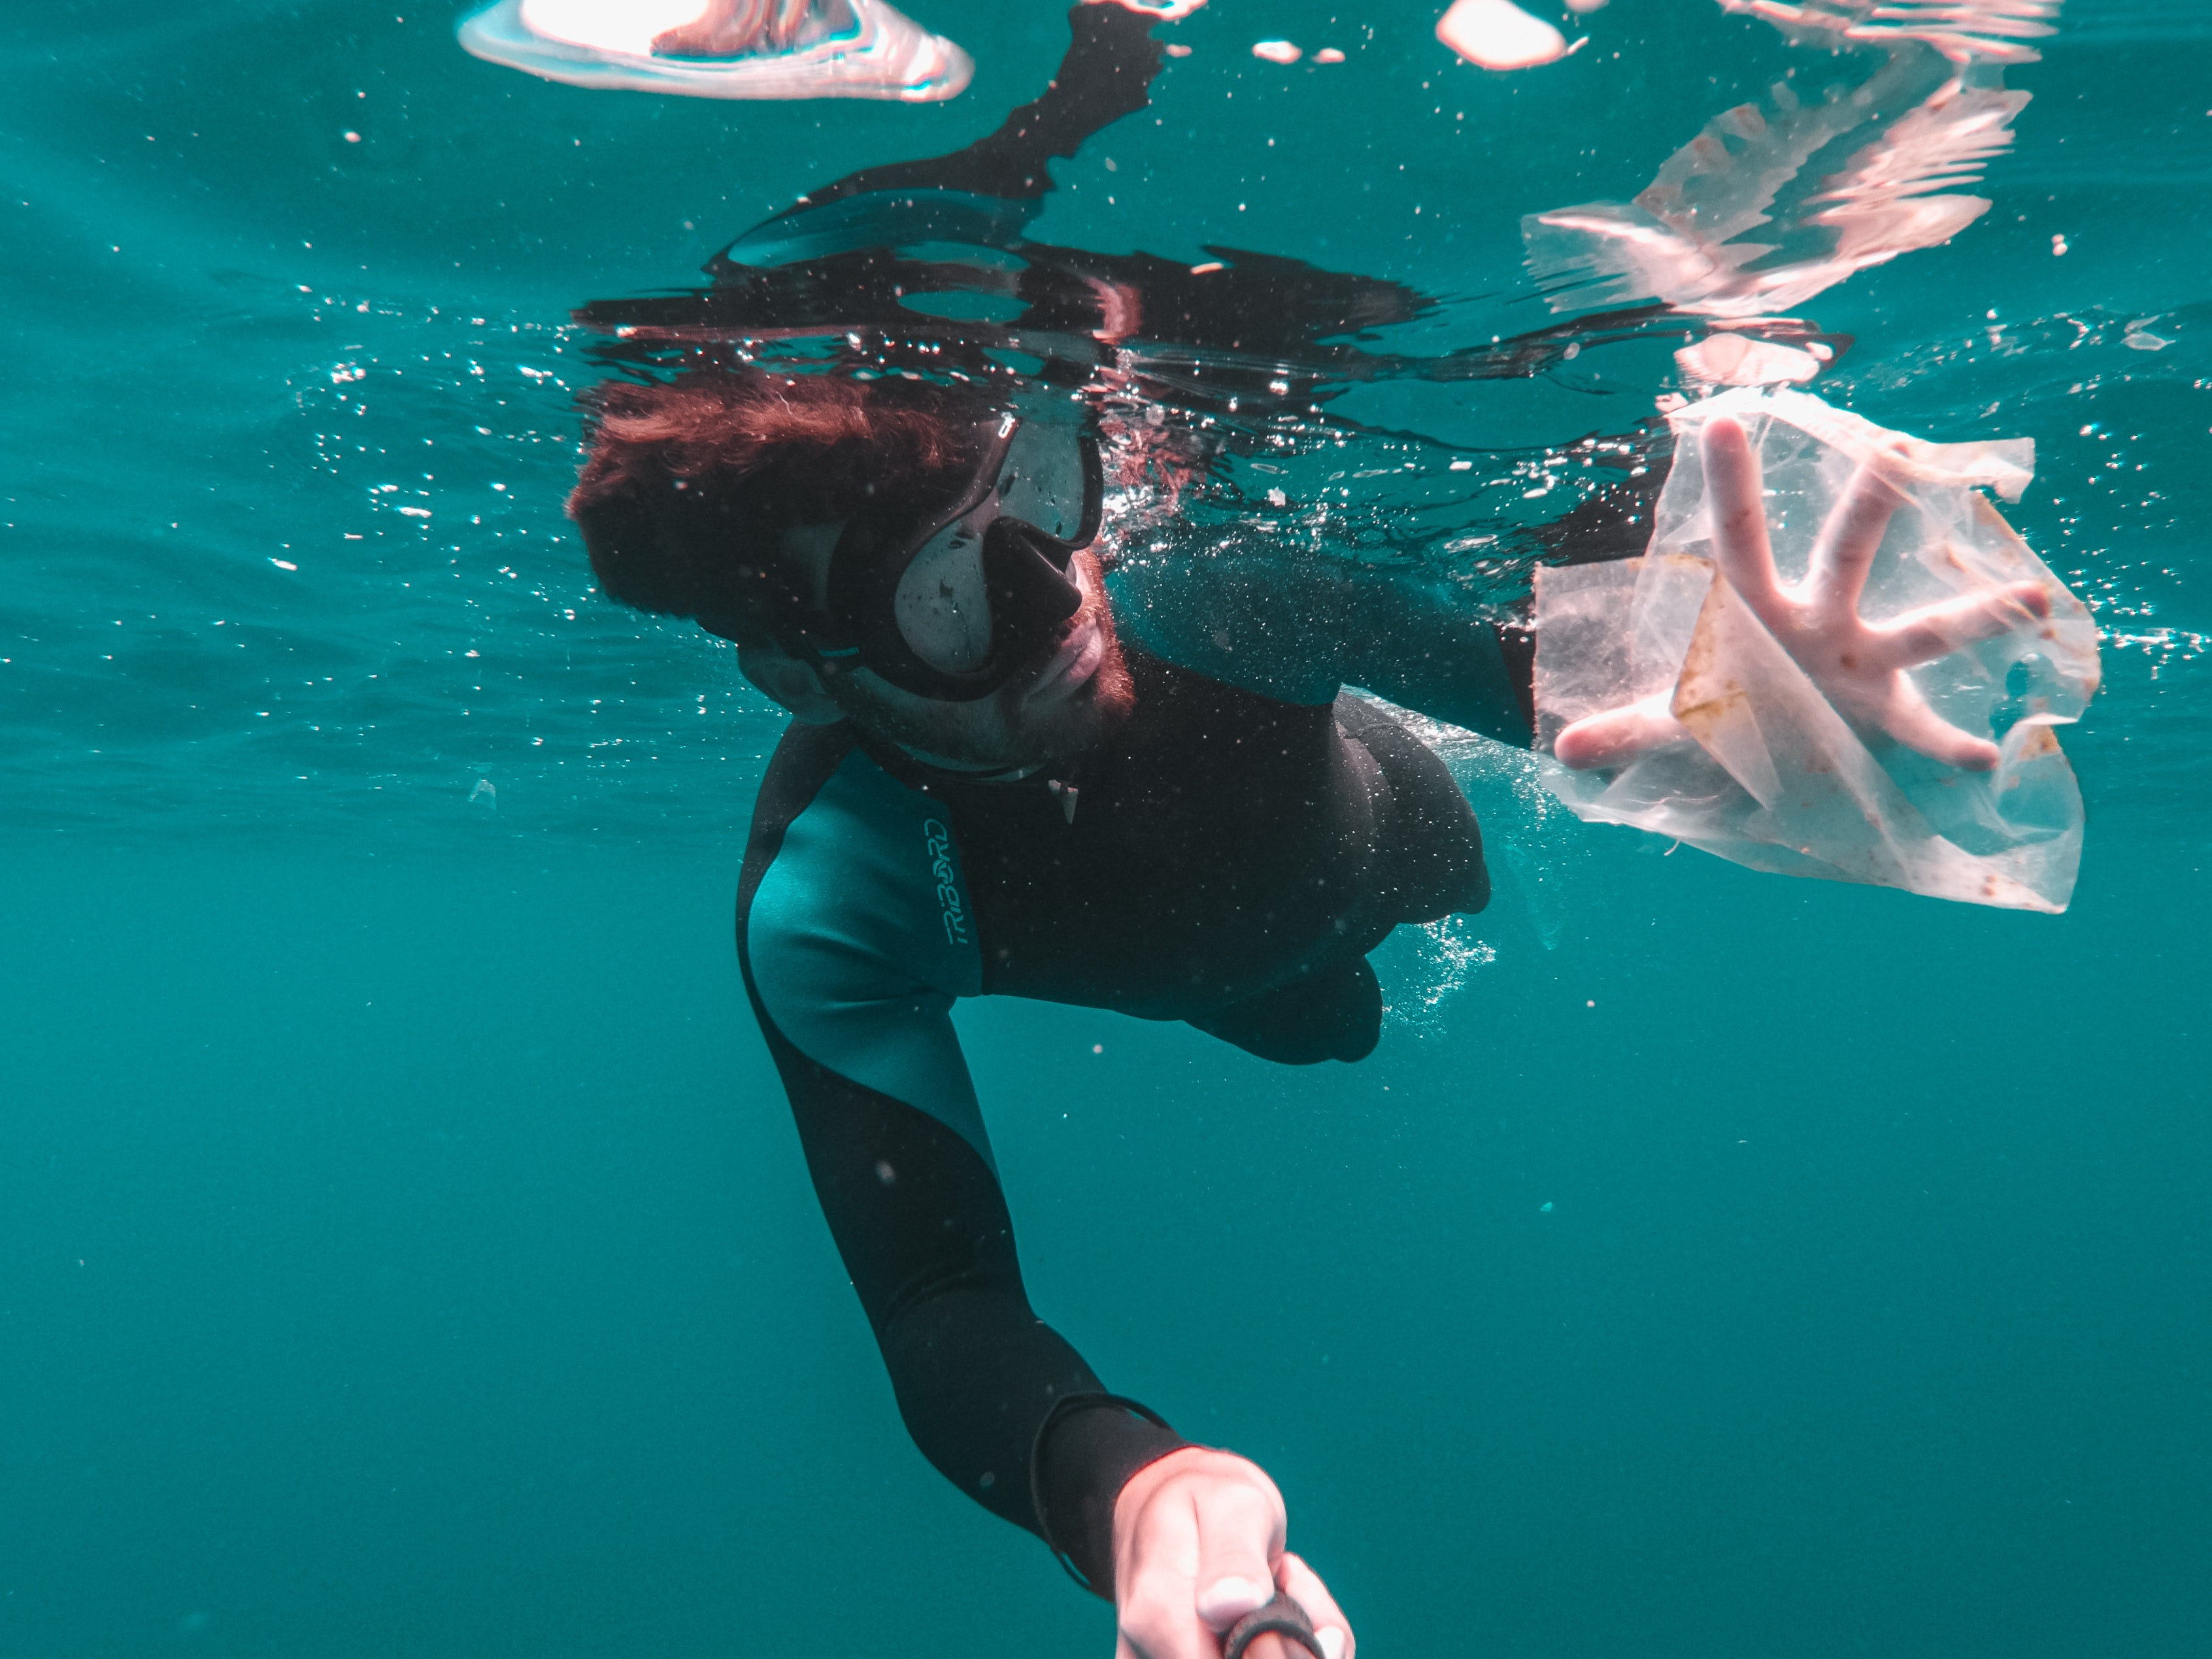 A diver in a suit and goggles, his hand reaching for plastic debris